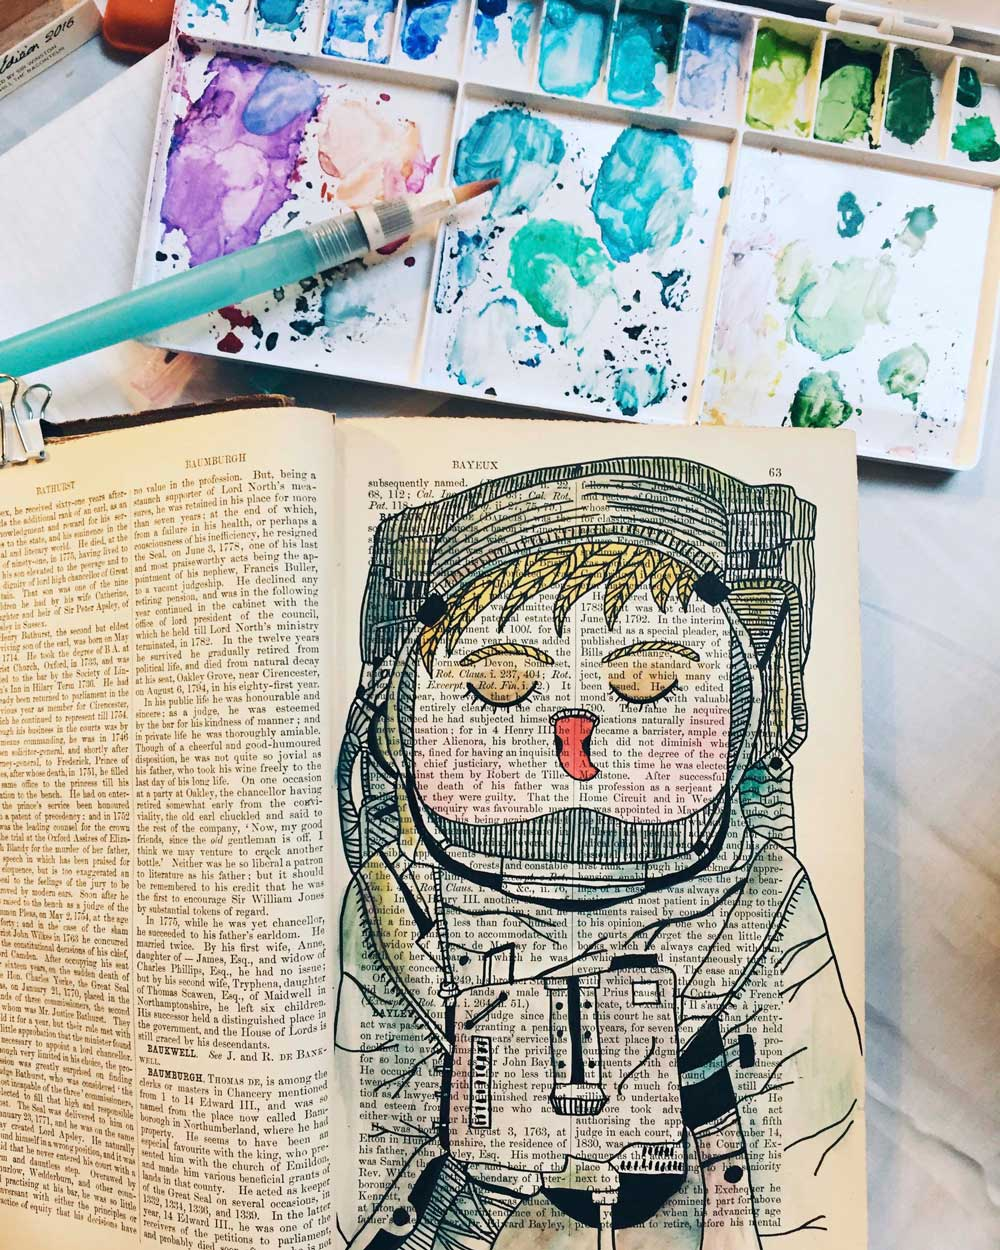 astronaut-book-page-painting-eve-devore-37.jpg